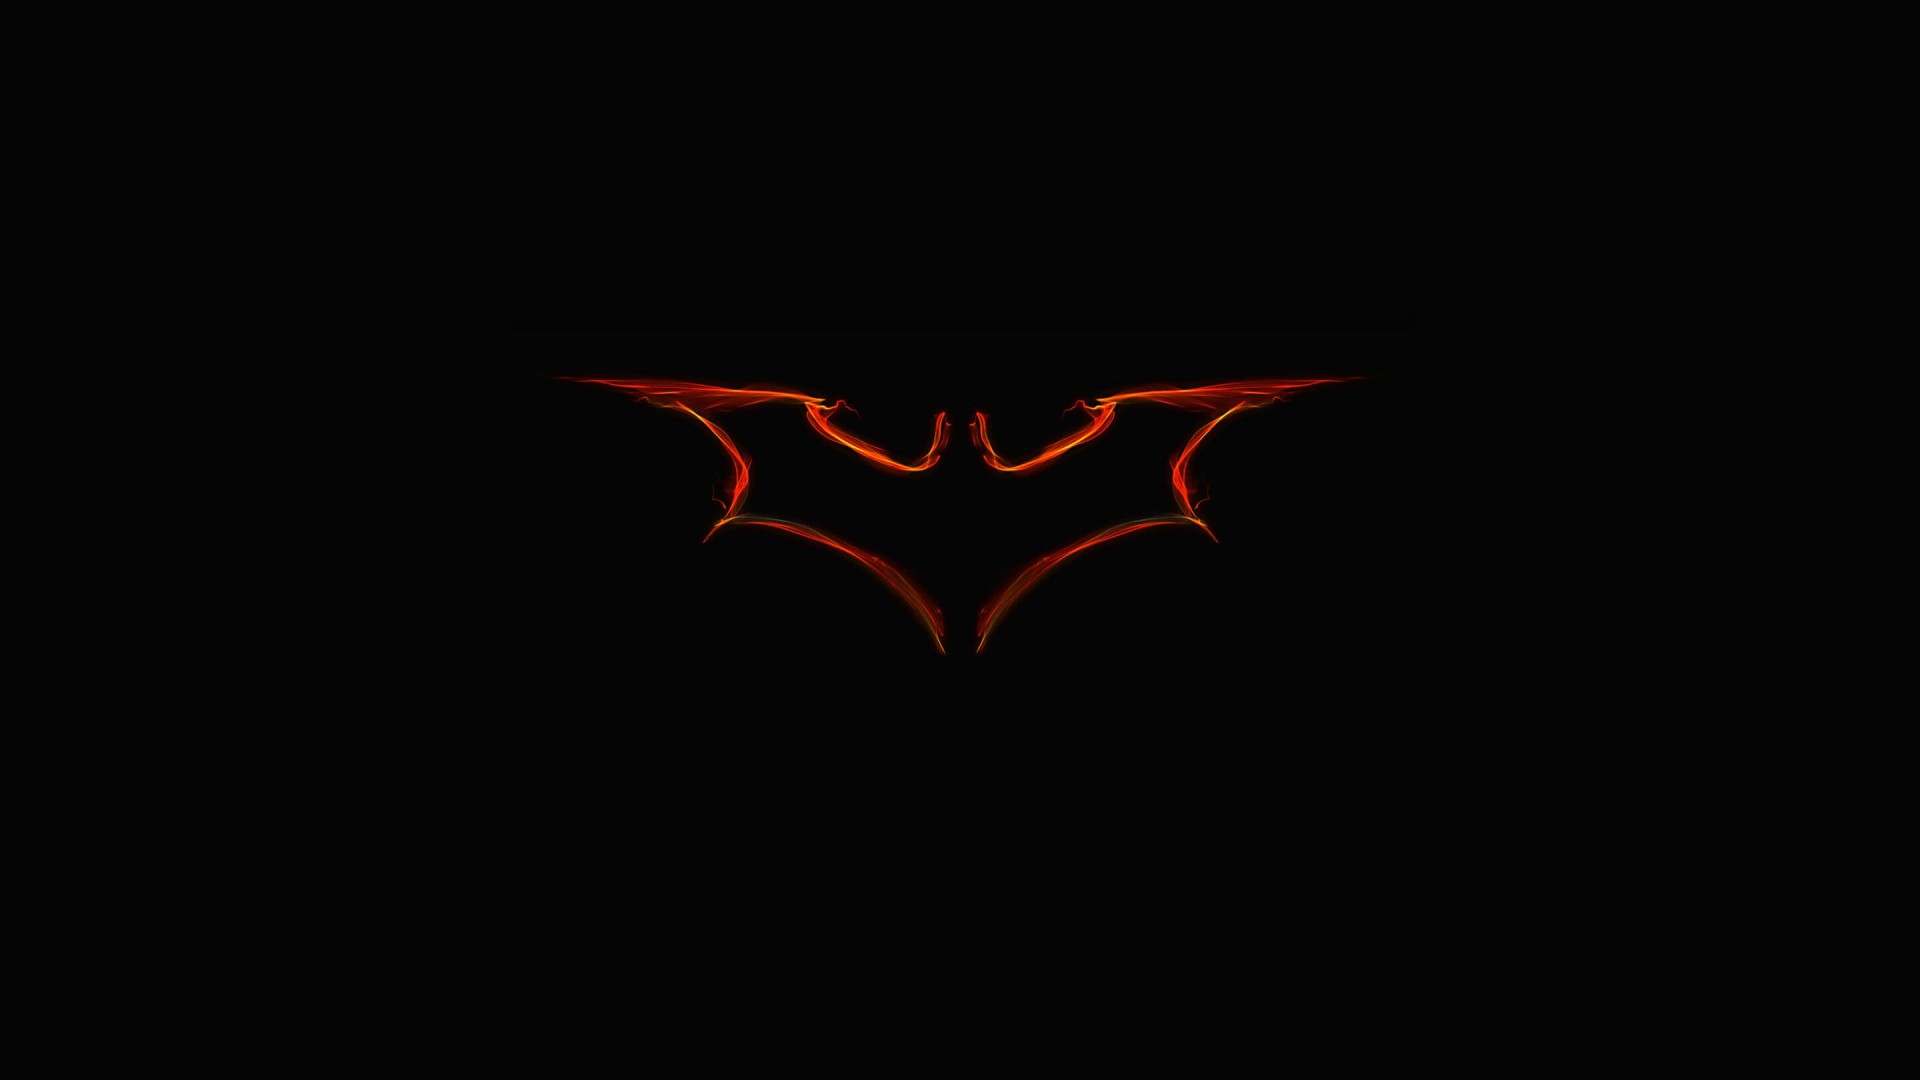 Batman Light Painting Logo Wallpaper for Desktop 1920x1080